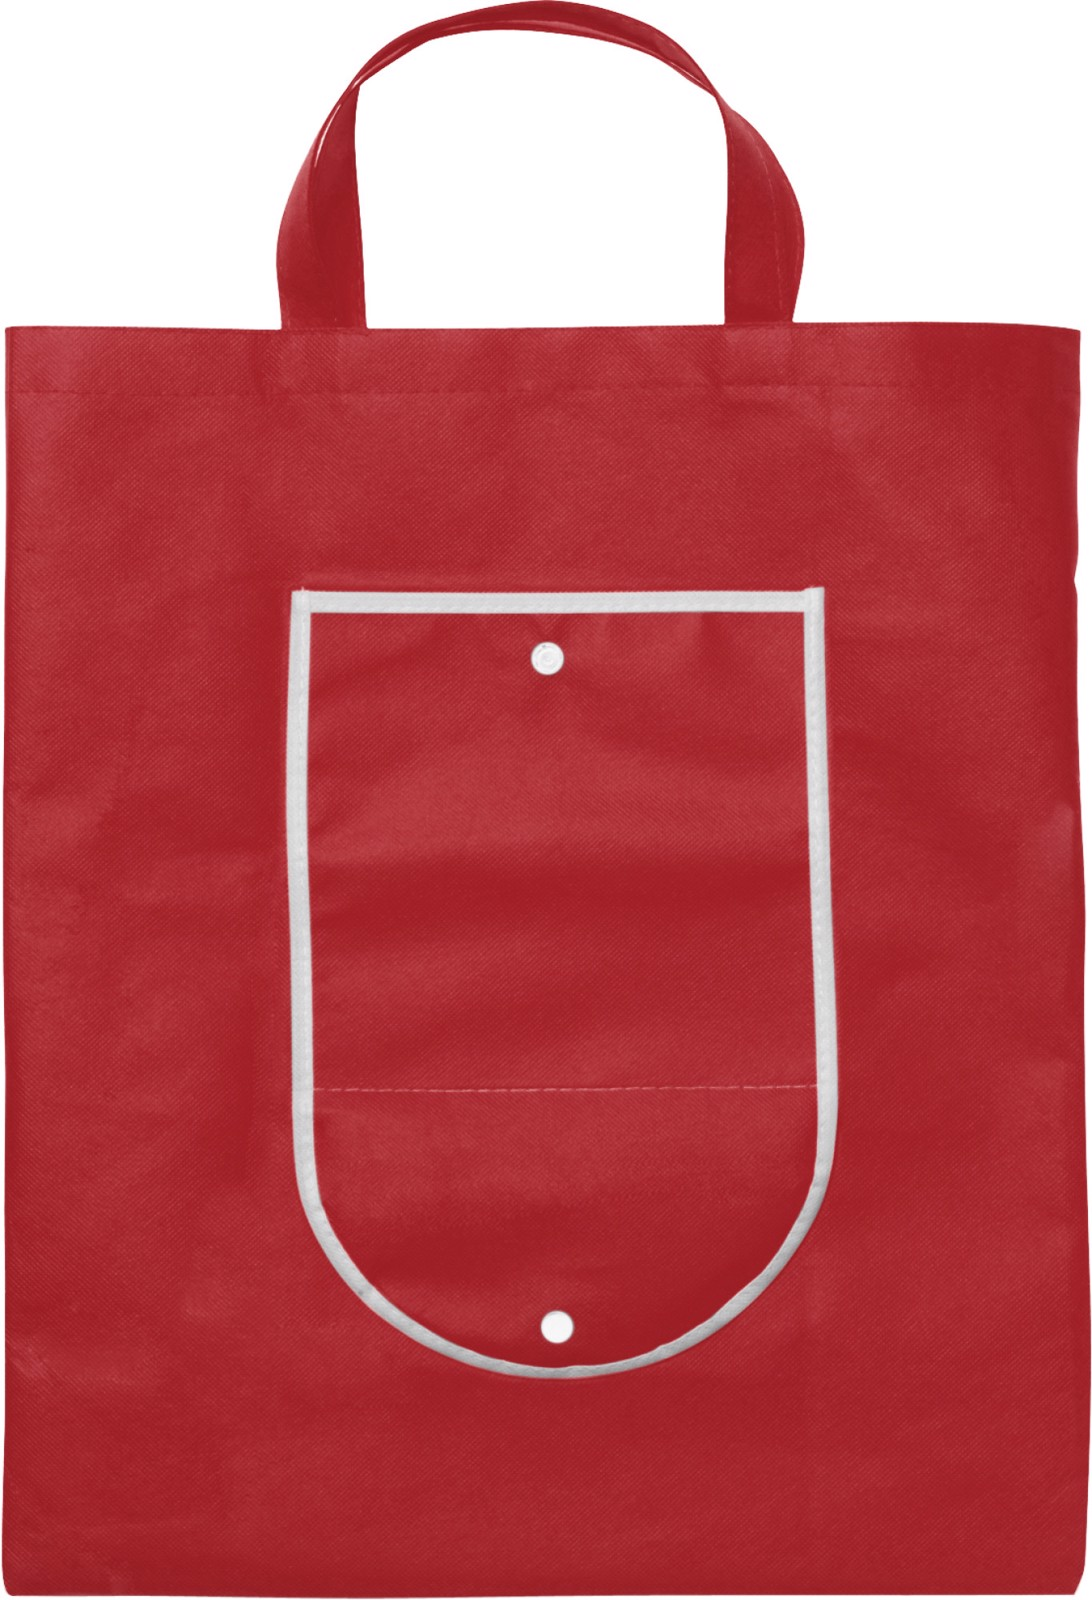 Nonwoven (80 g/m²) foldable shopping bag - Red